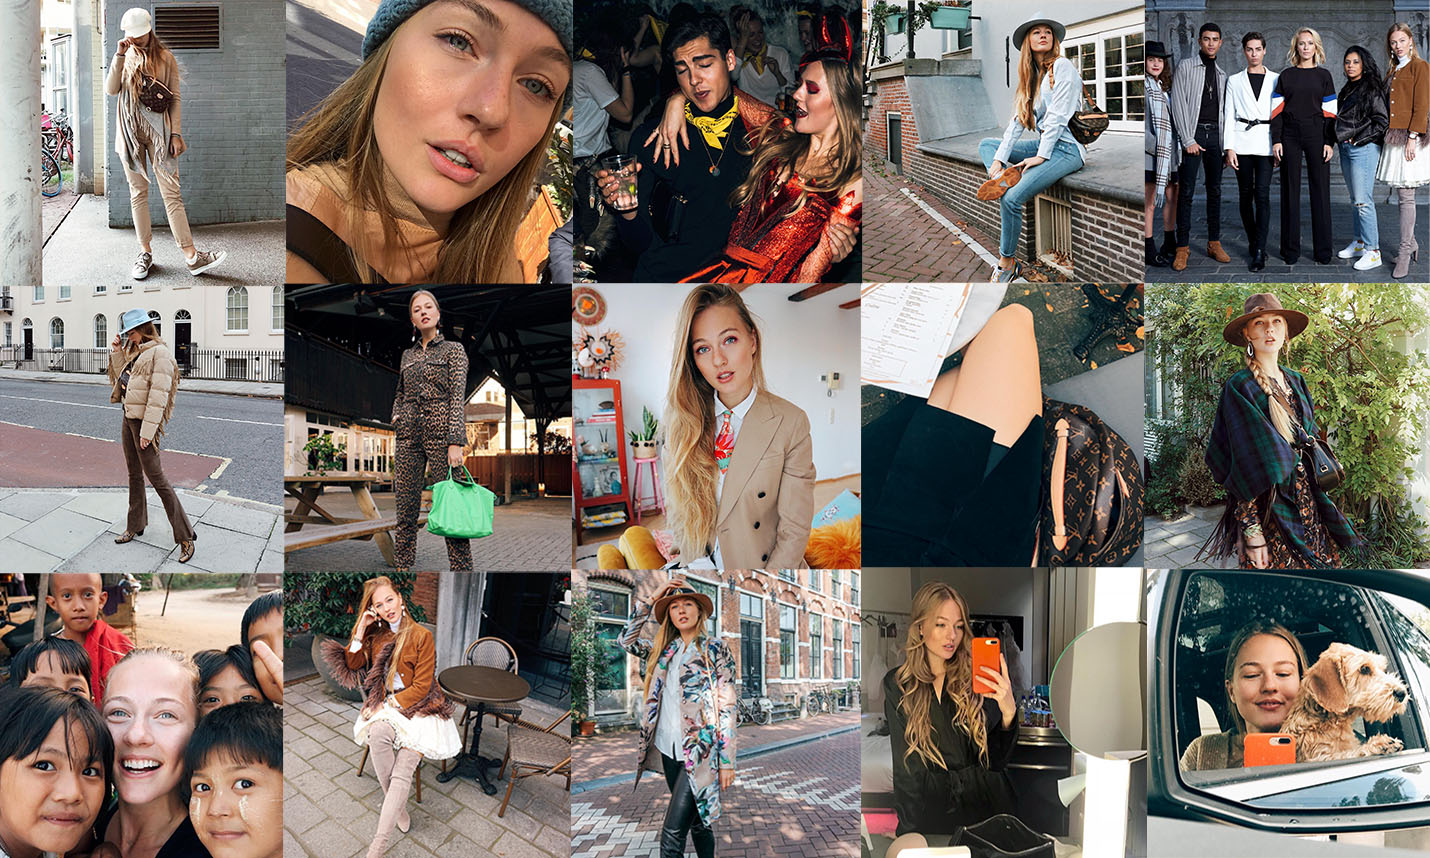 INSTAGRAM OUTFITS OCTOBER '18